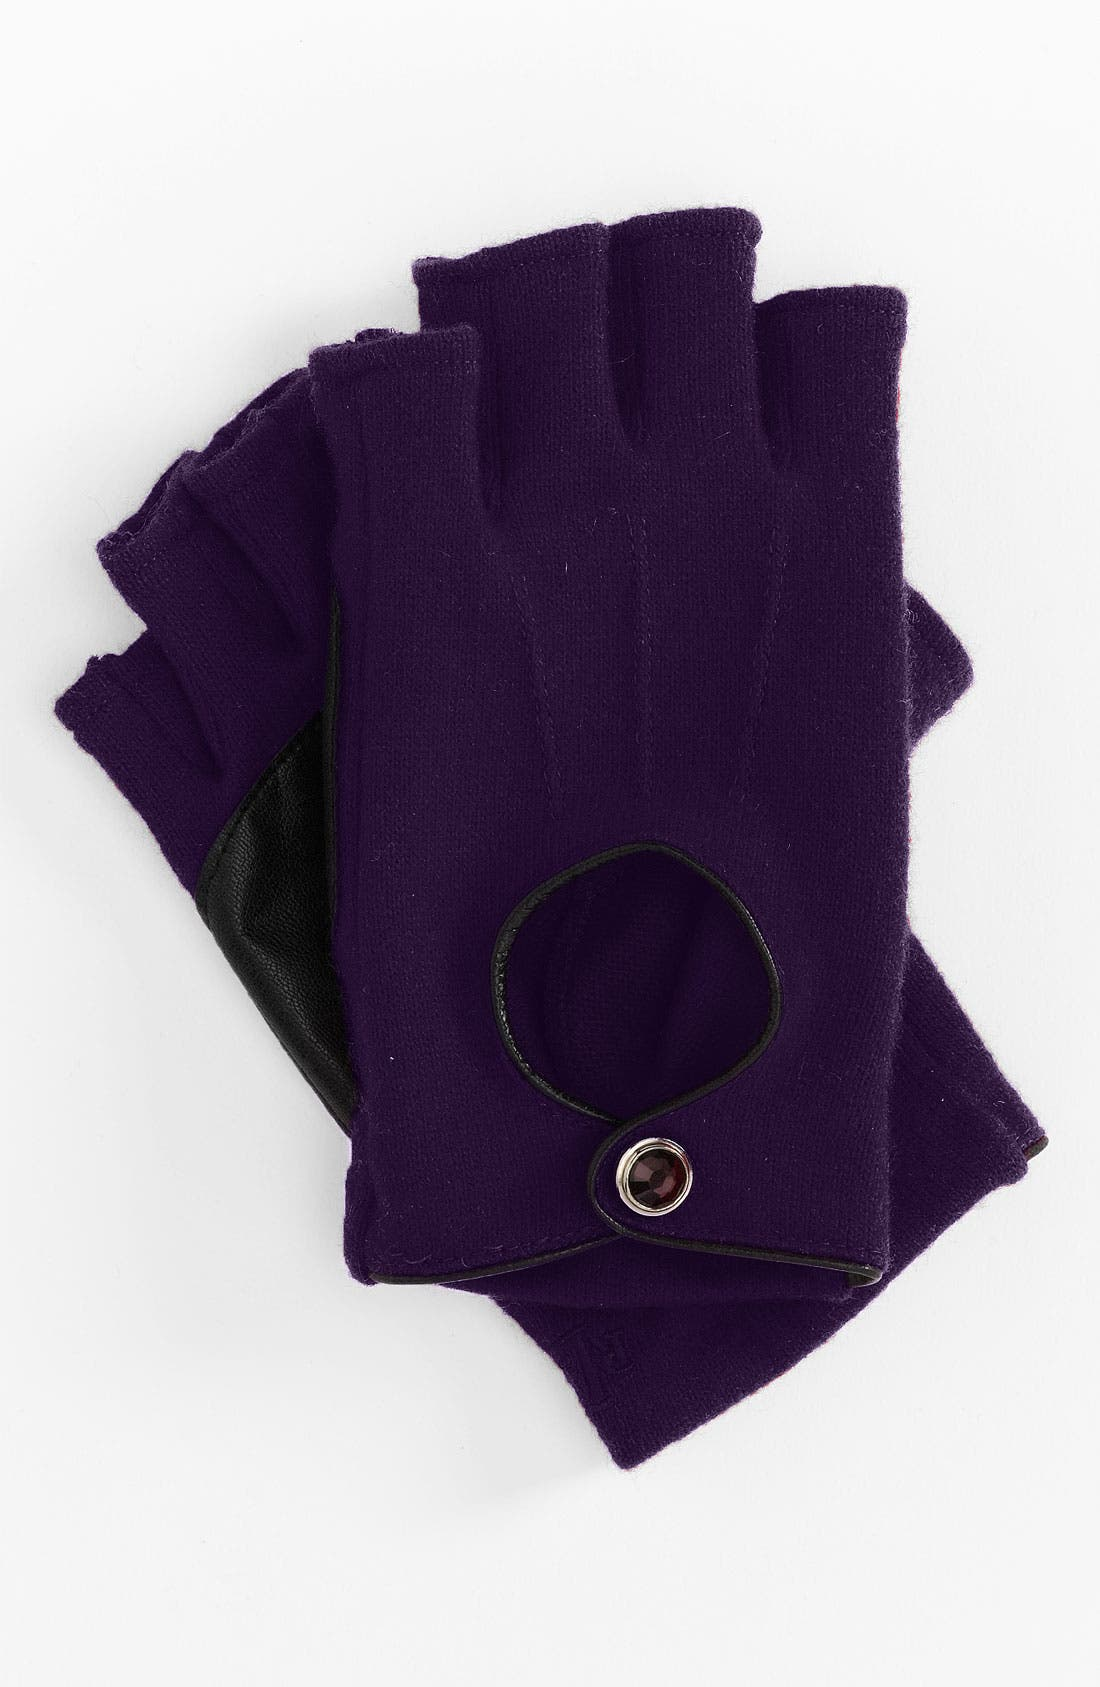 Alternate Image 1 Selected - Lauren Ralph Lauren Fingerless Driving Gloves